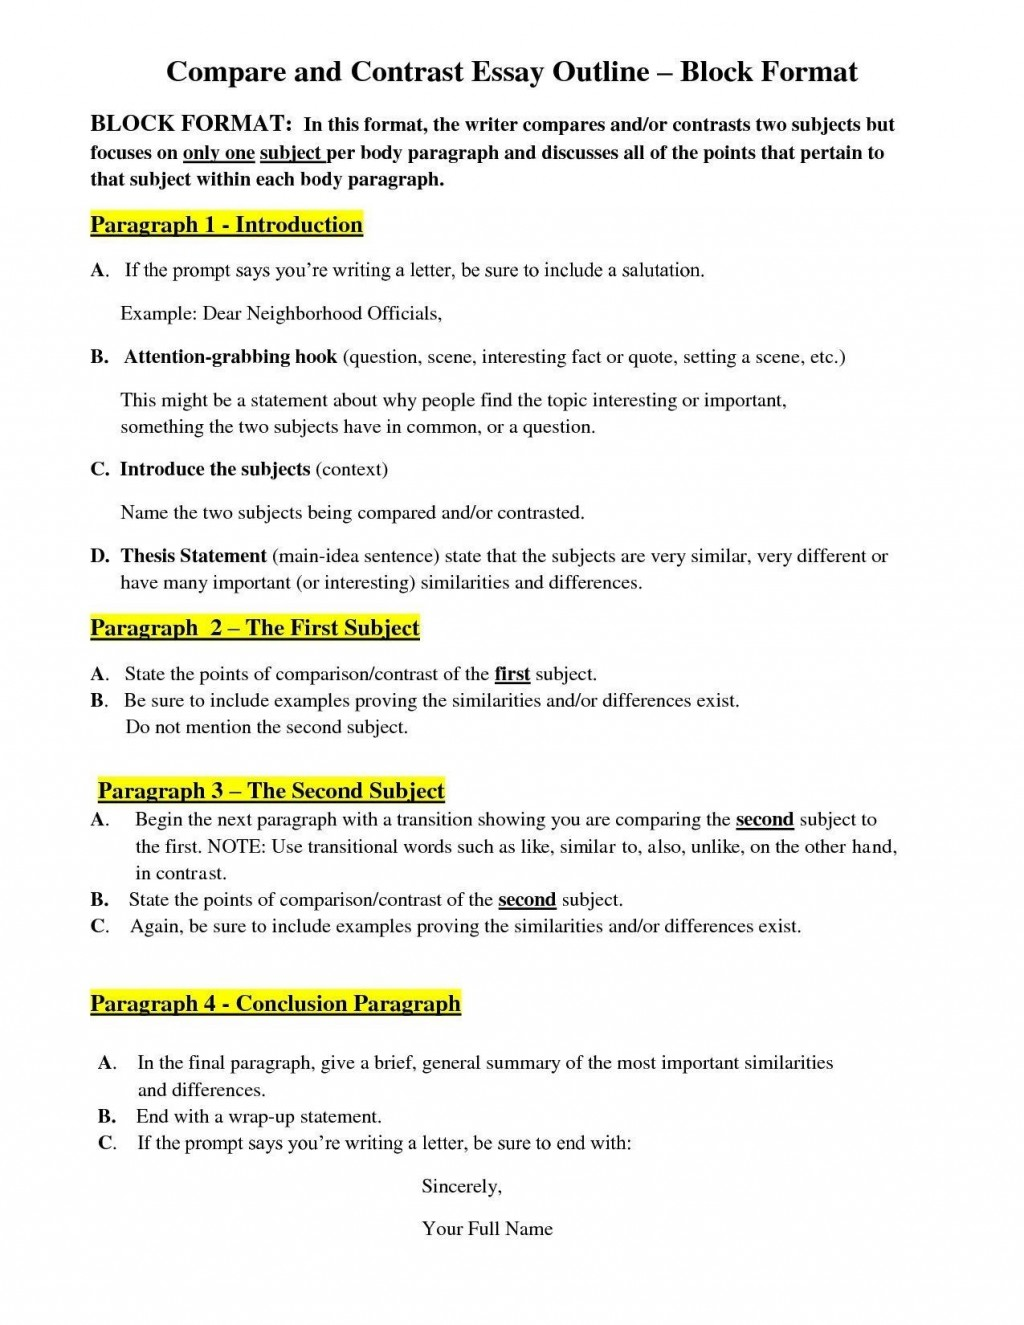 014 Essay Examplempare Andntrastmparison Best Examples Of Scenario In 6th Grade An Goo 3rd Food 5th Middle School Block Format Pdf High 4th Vs Striking Compare And Contrast Example Elementary Fourth For College Students Large